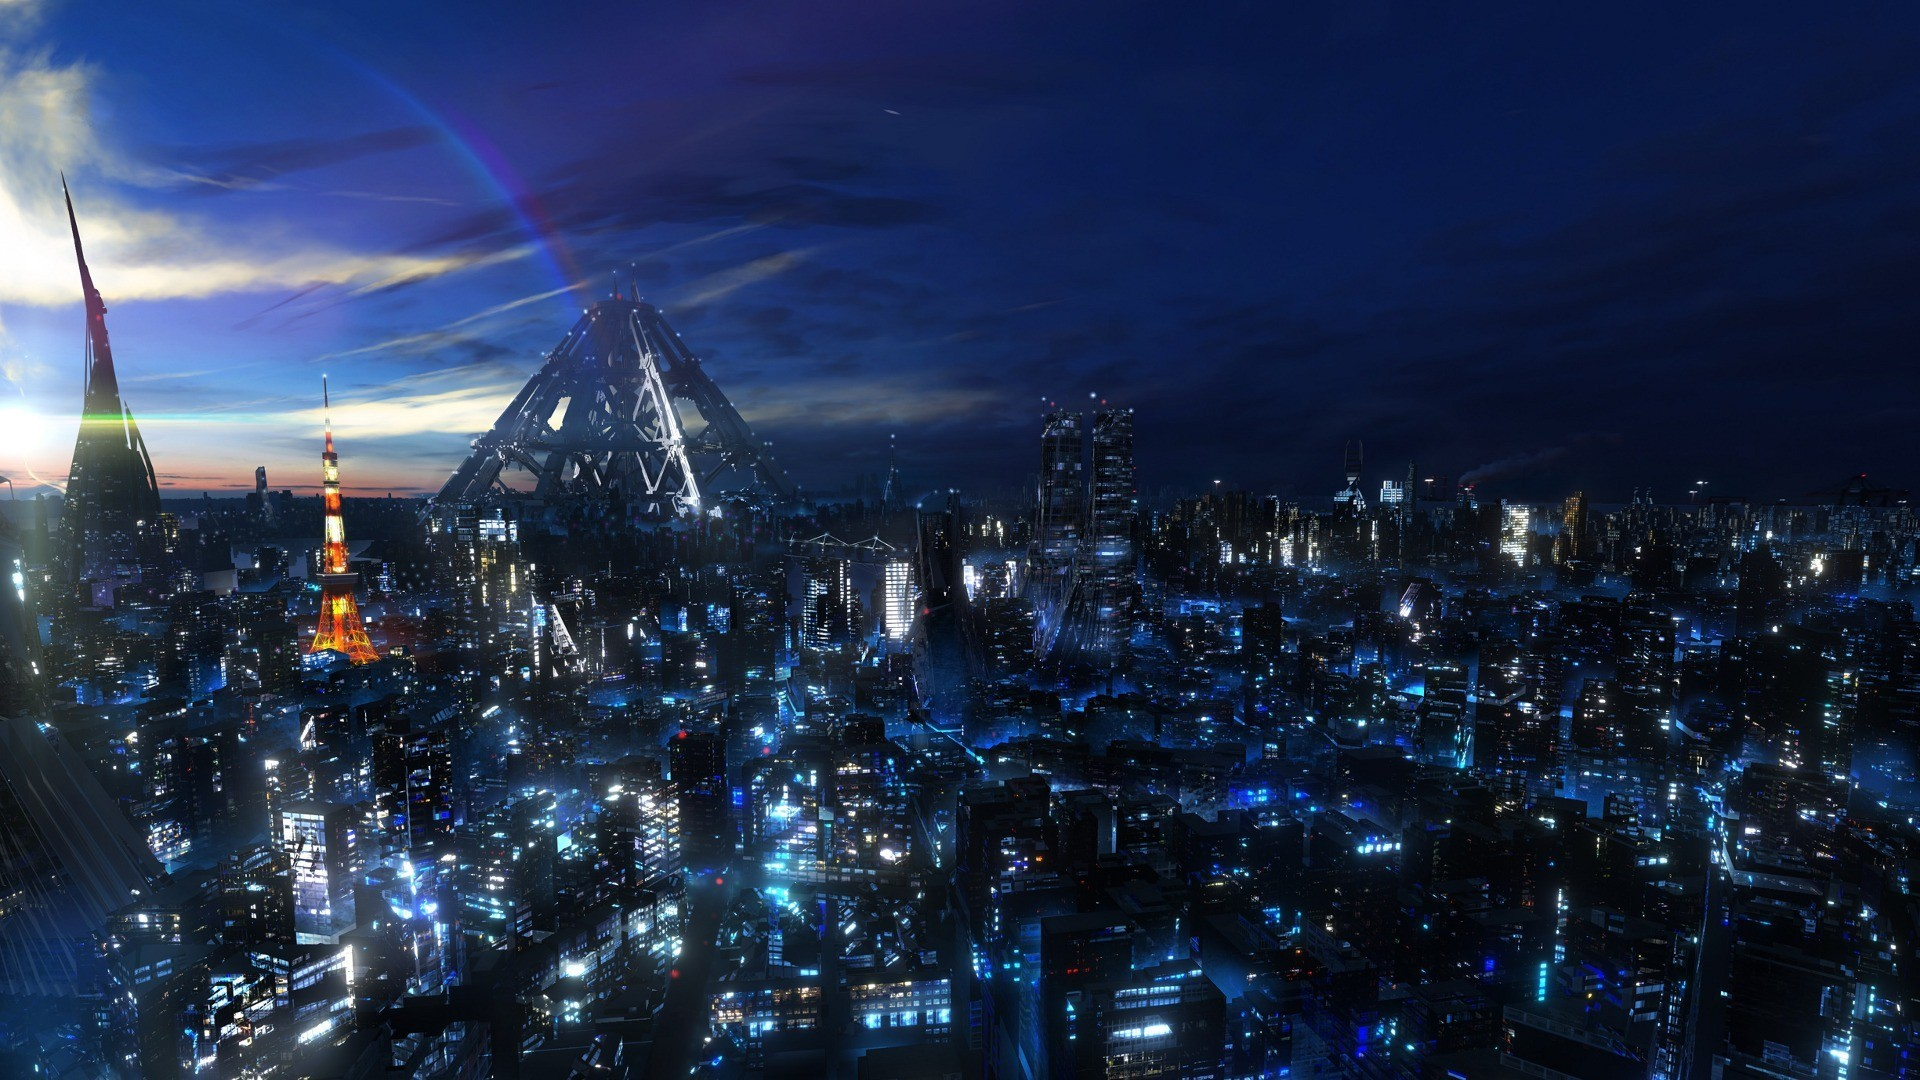 Abstract Anime Wallpaper Cityscapes Anime Cities Futuristic City Wallpaper